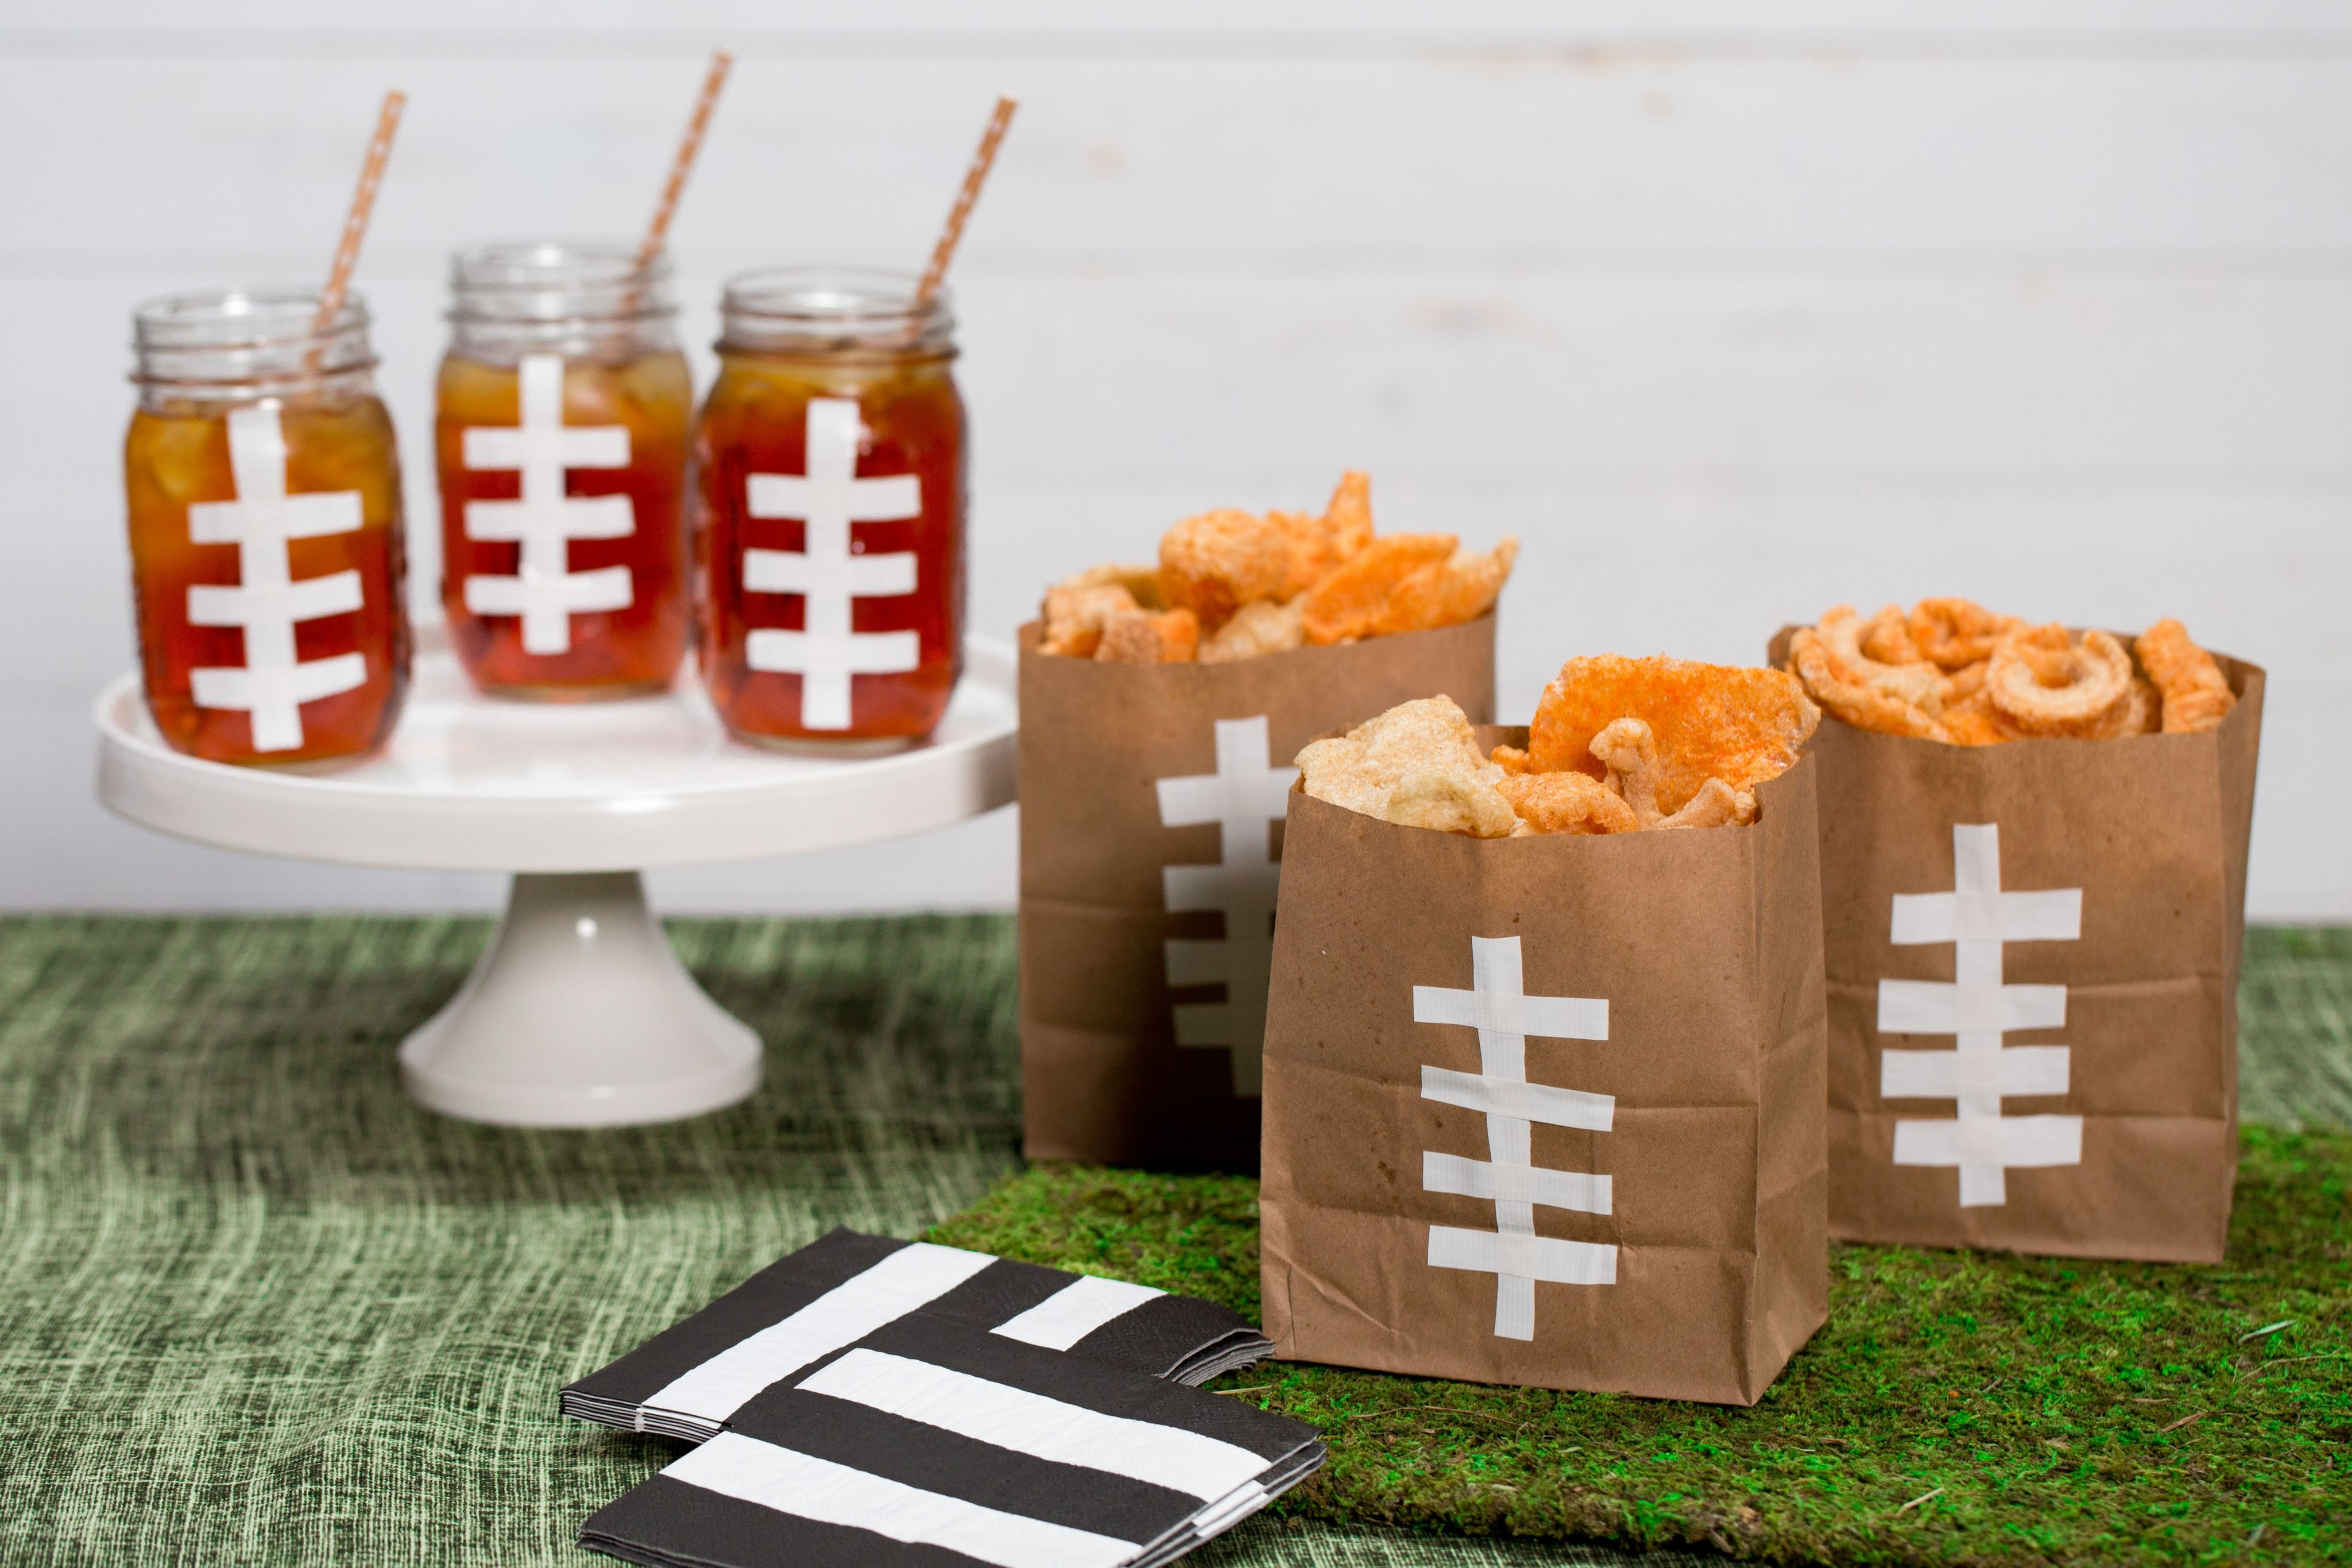 How To Make Cool Festive Football Bags and Mason Jars | Southern Living